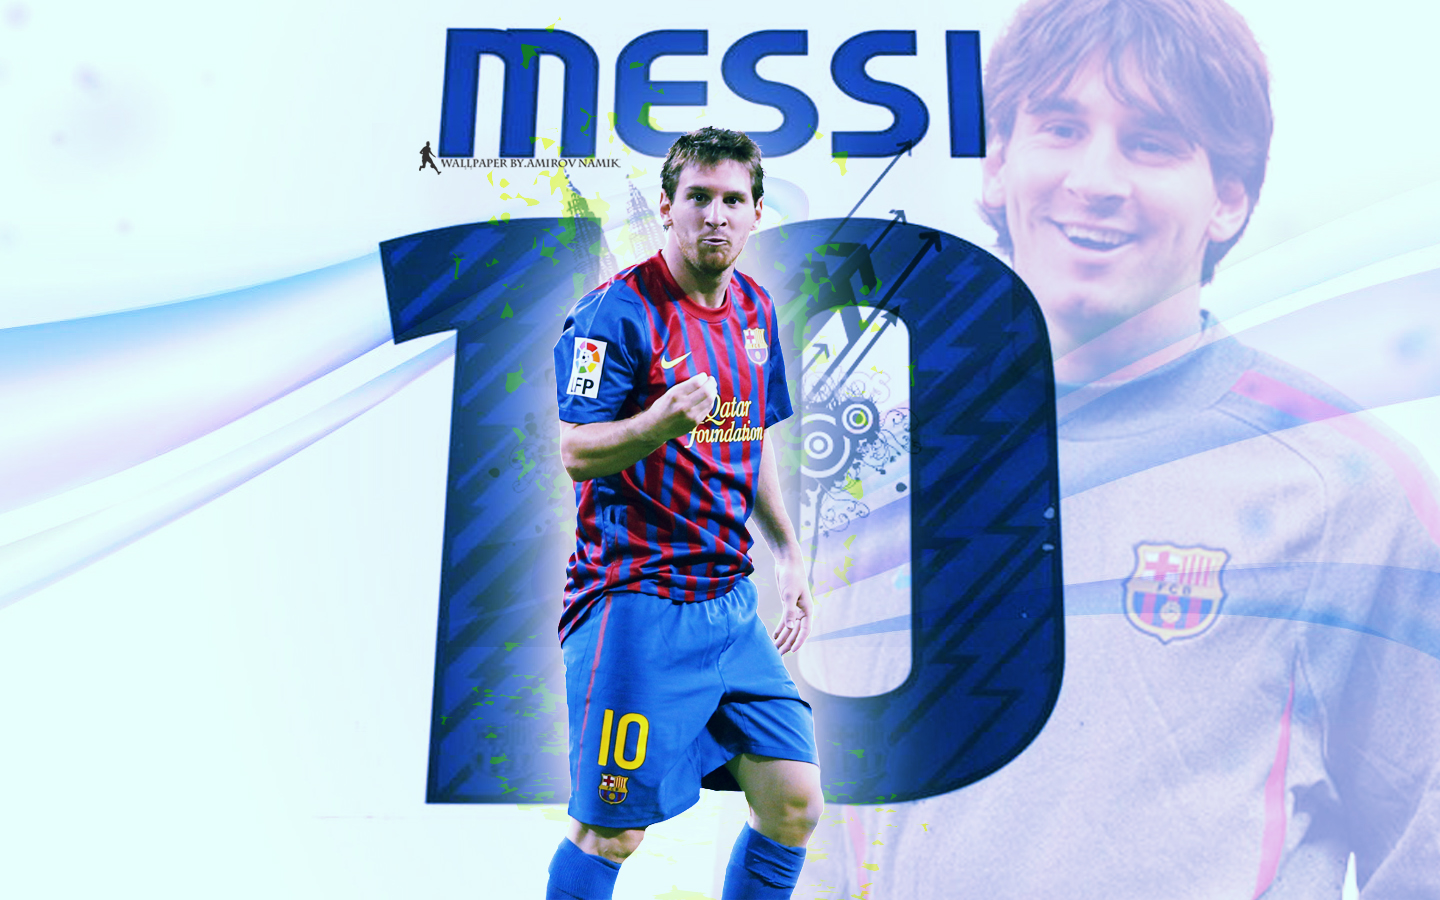 Football Super Stars Lionel Messi New Hd Wallpapers 2012 picture wallpaper image